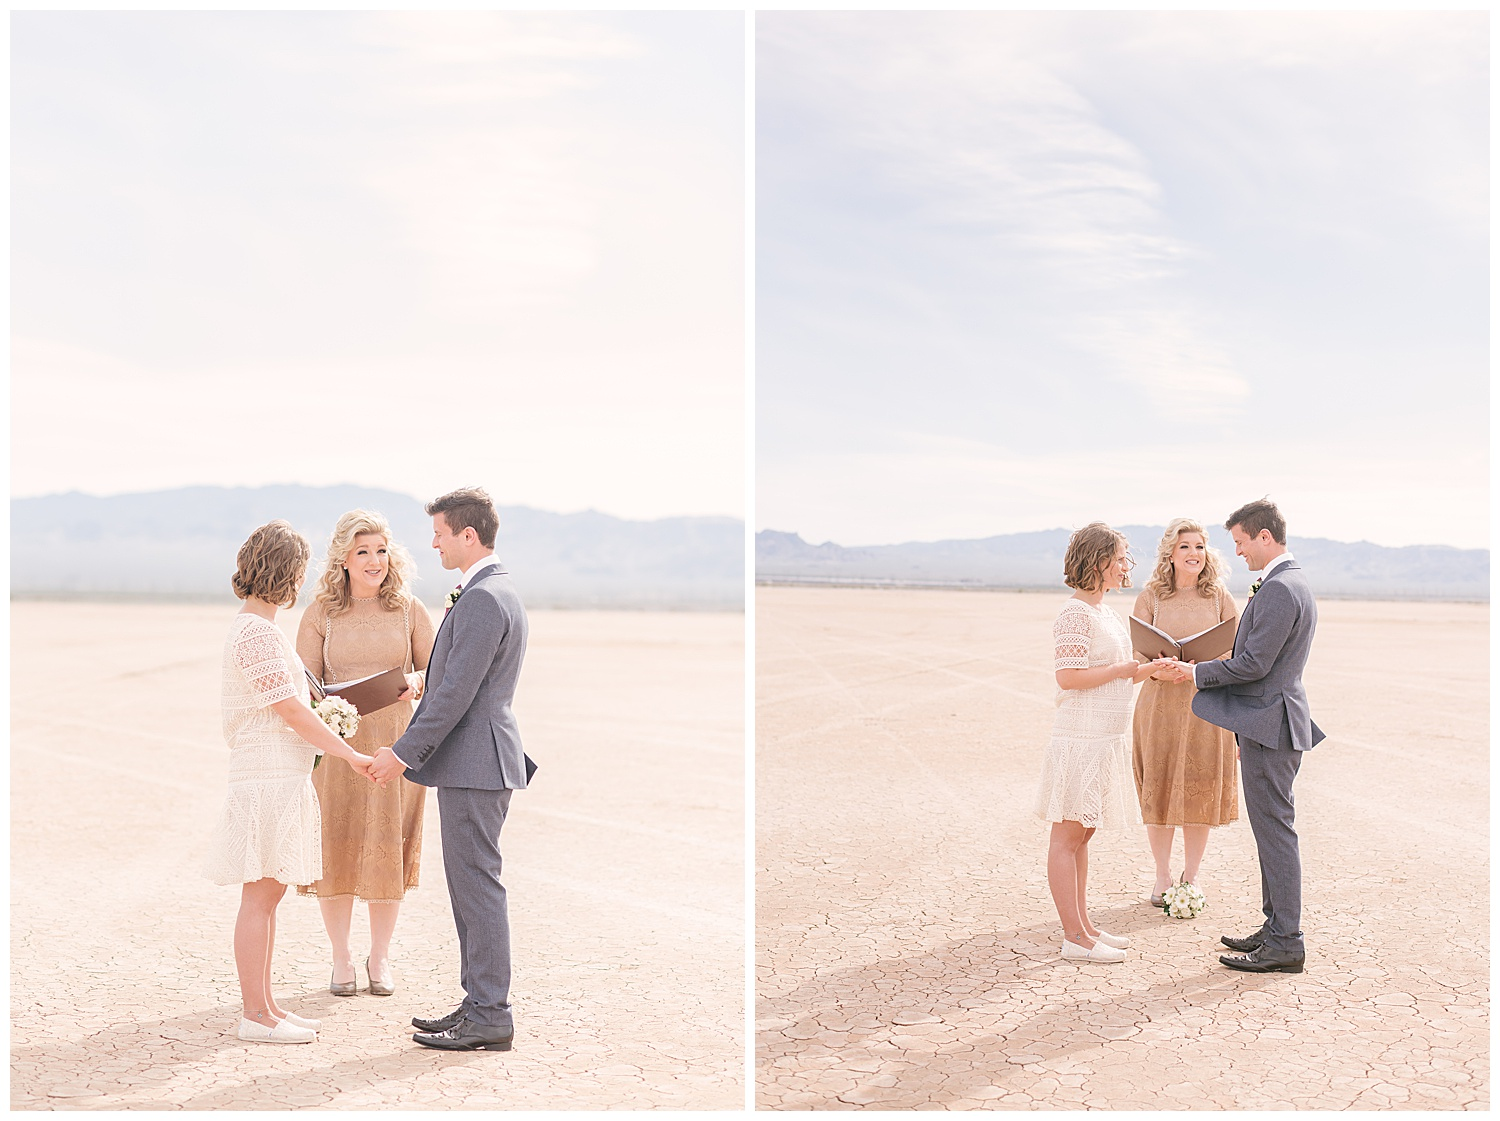 dry-lake-bed-las-vegas-elopement-photographer-03.jpg